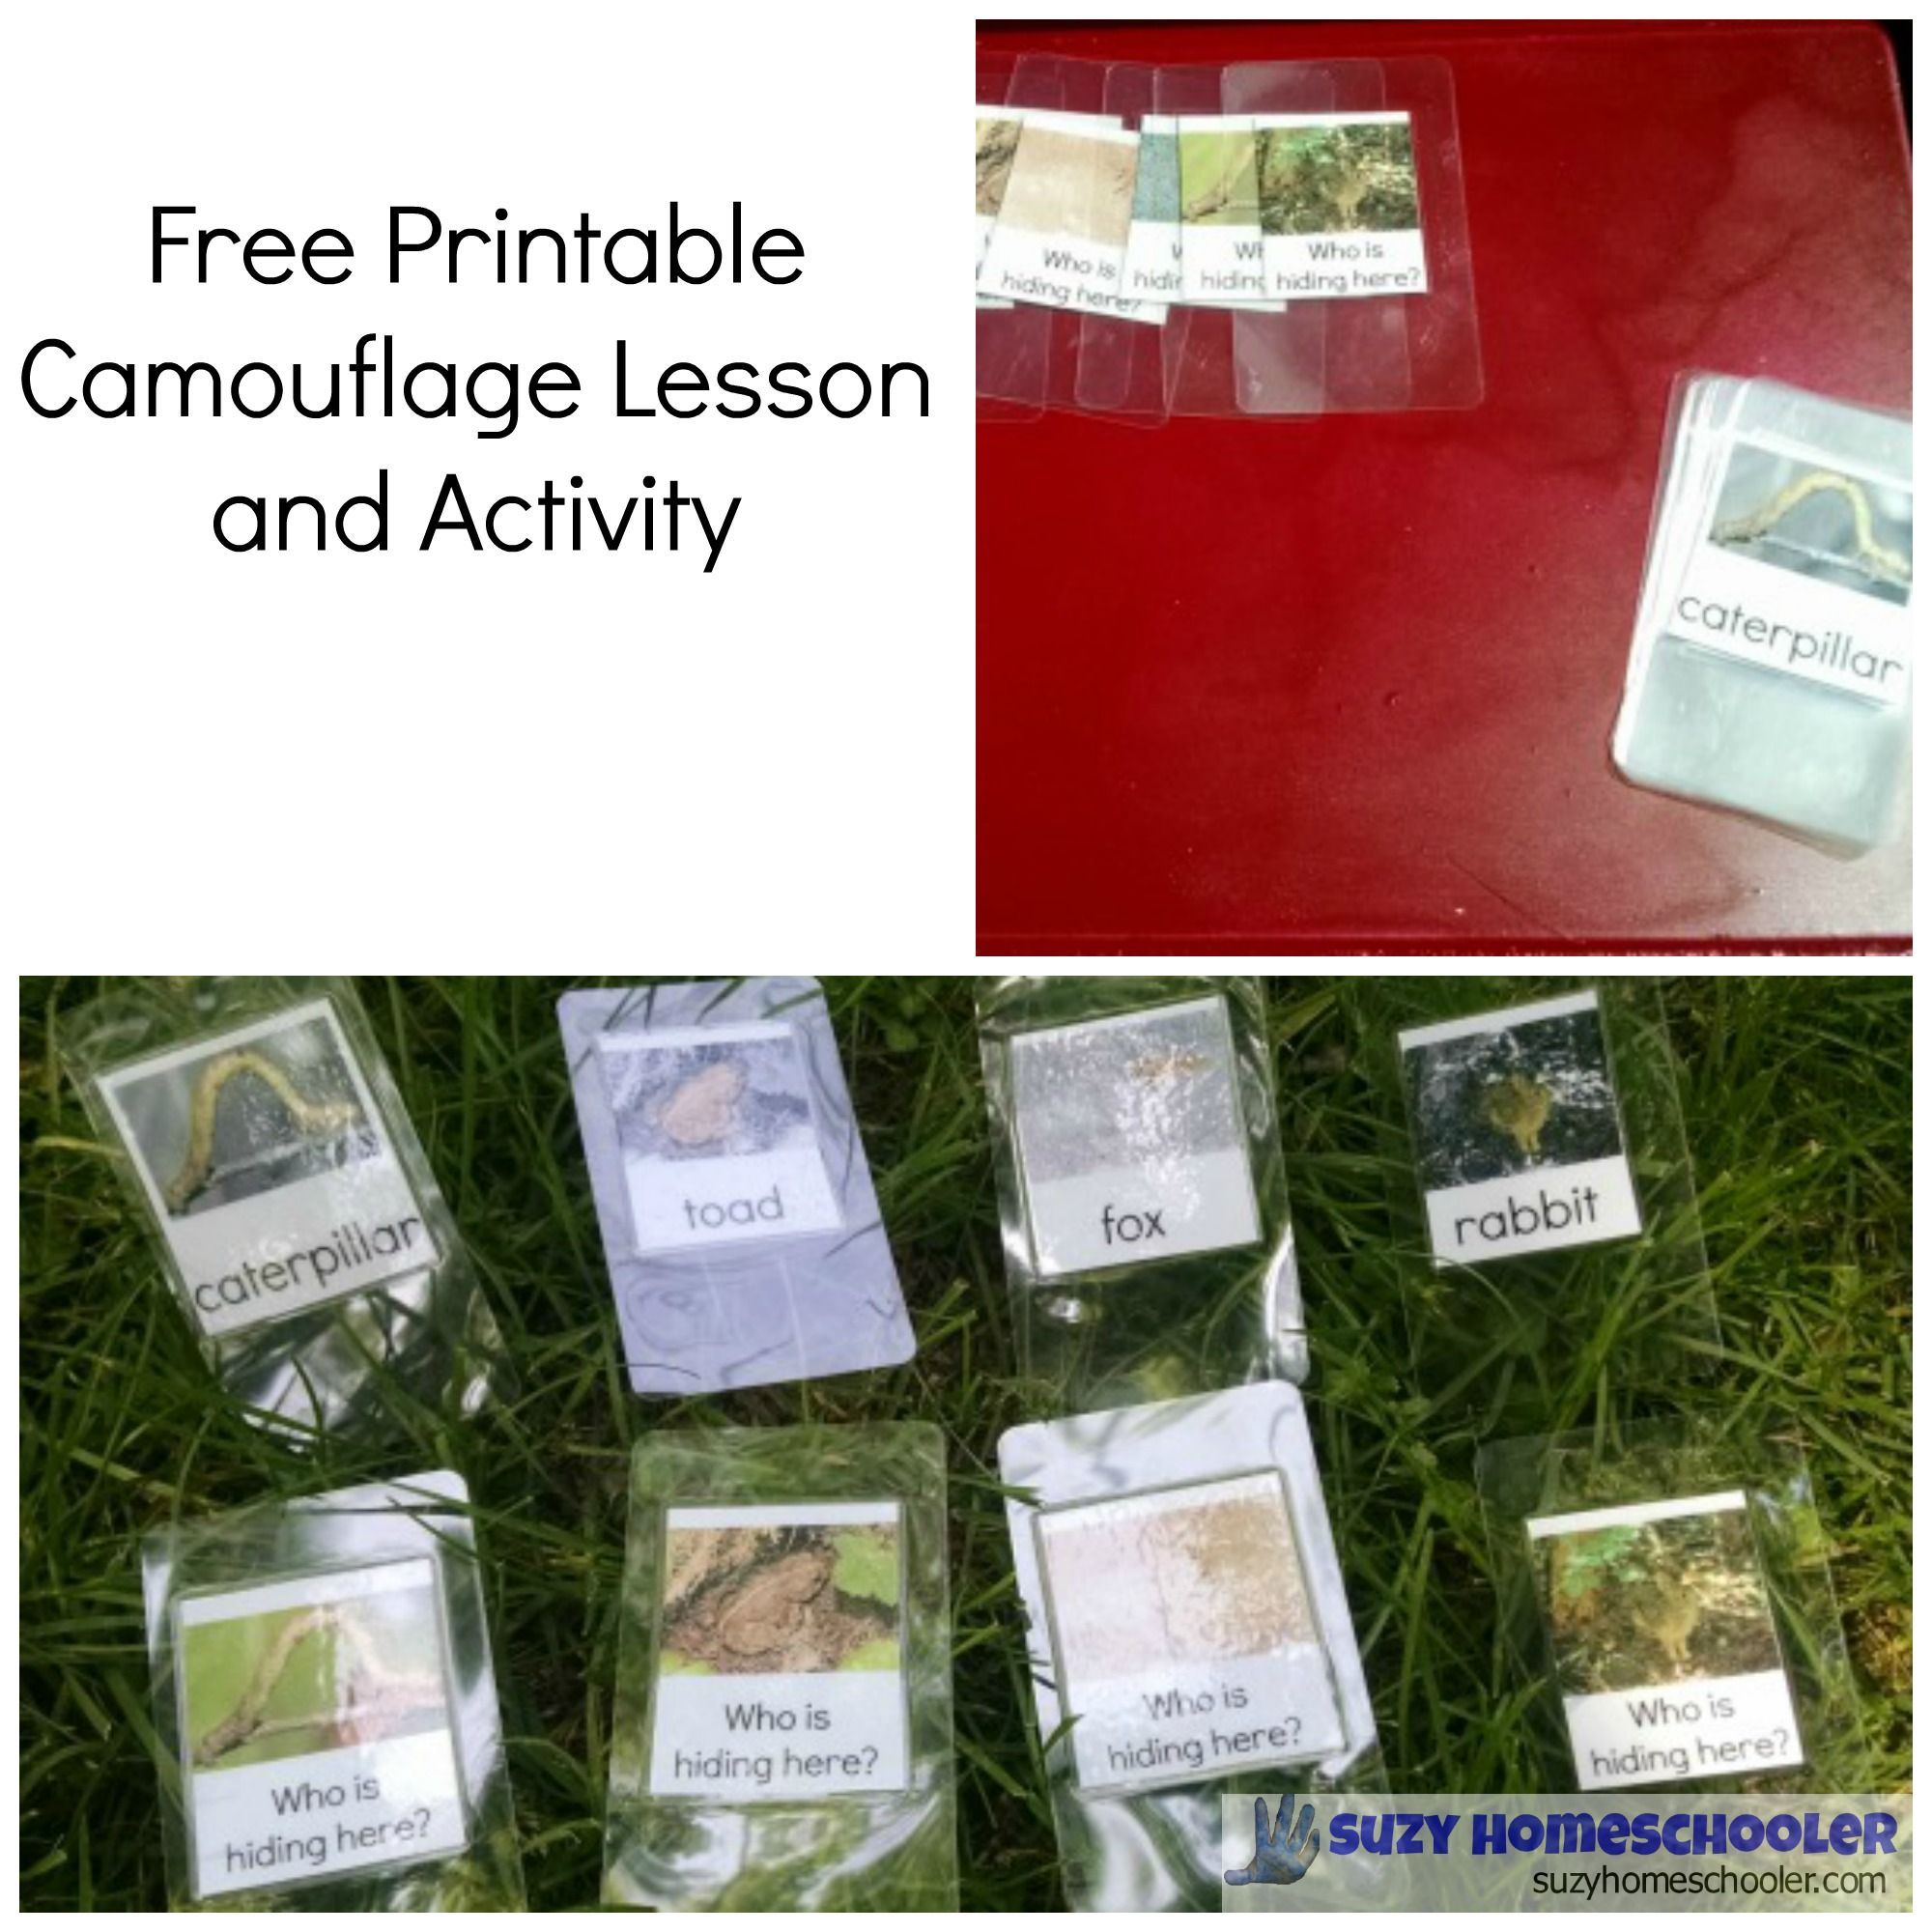 Free Printable Camouflage Lesson And Activity With Images